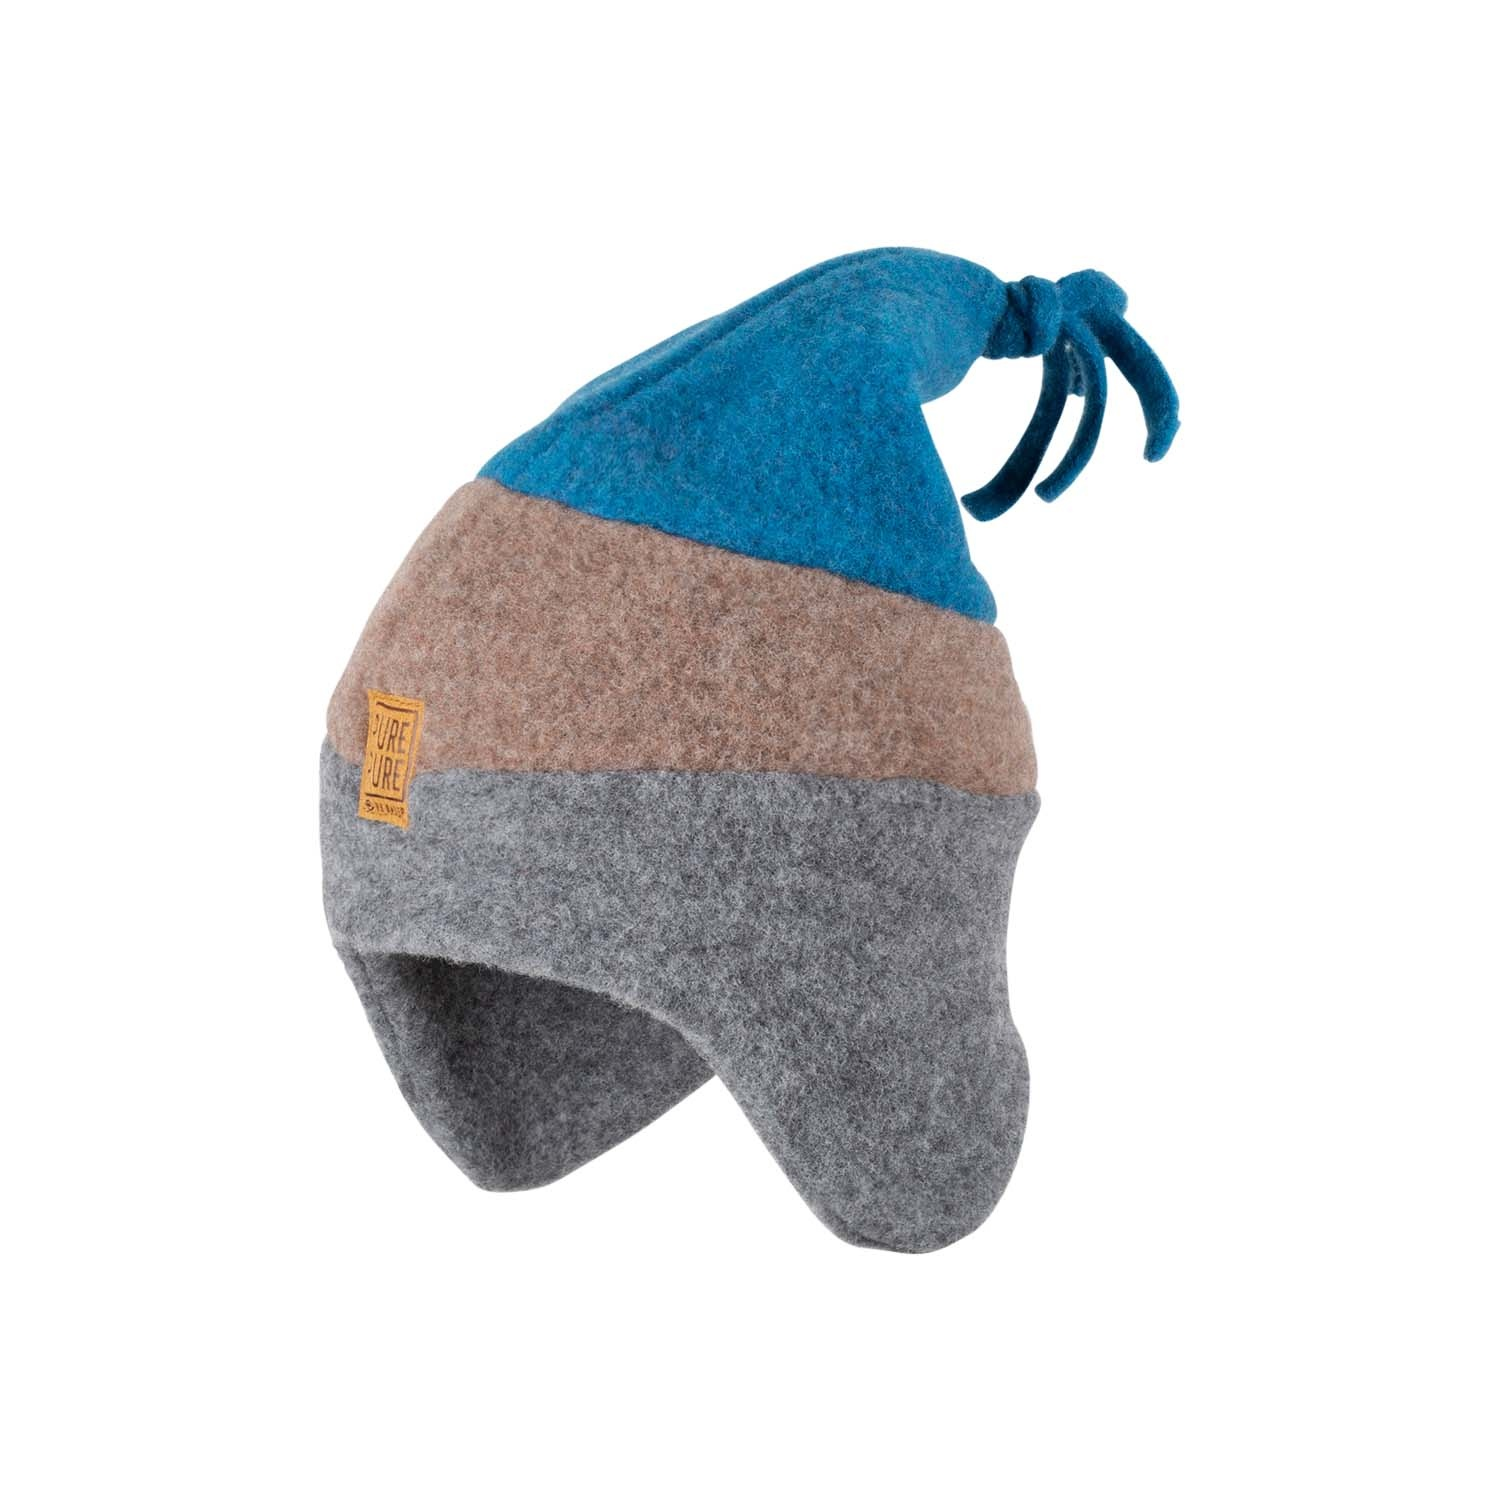 Pure Pure by Bauer - woolen children's hat - 100% organic merino wool fleece - grey/ brown/ petrol blue